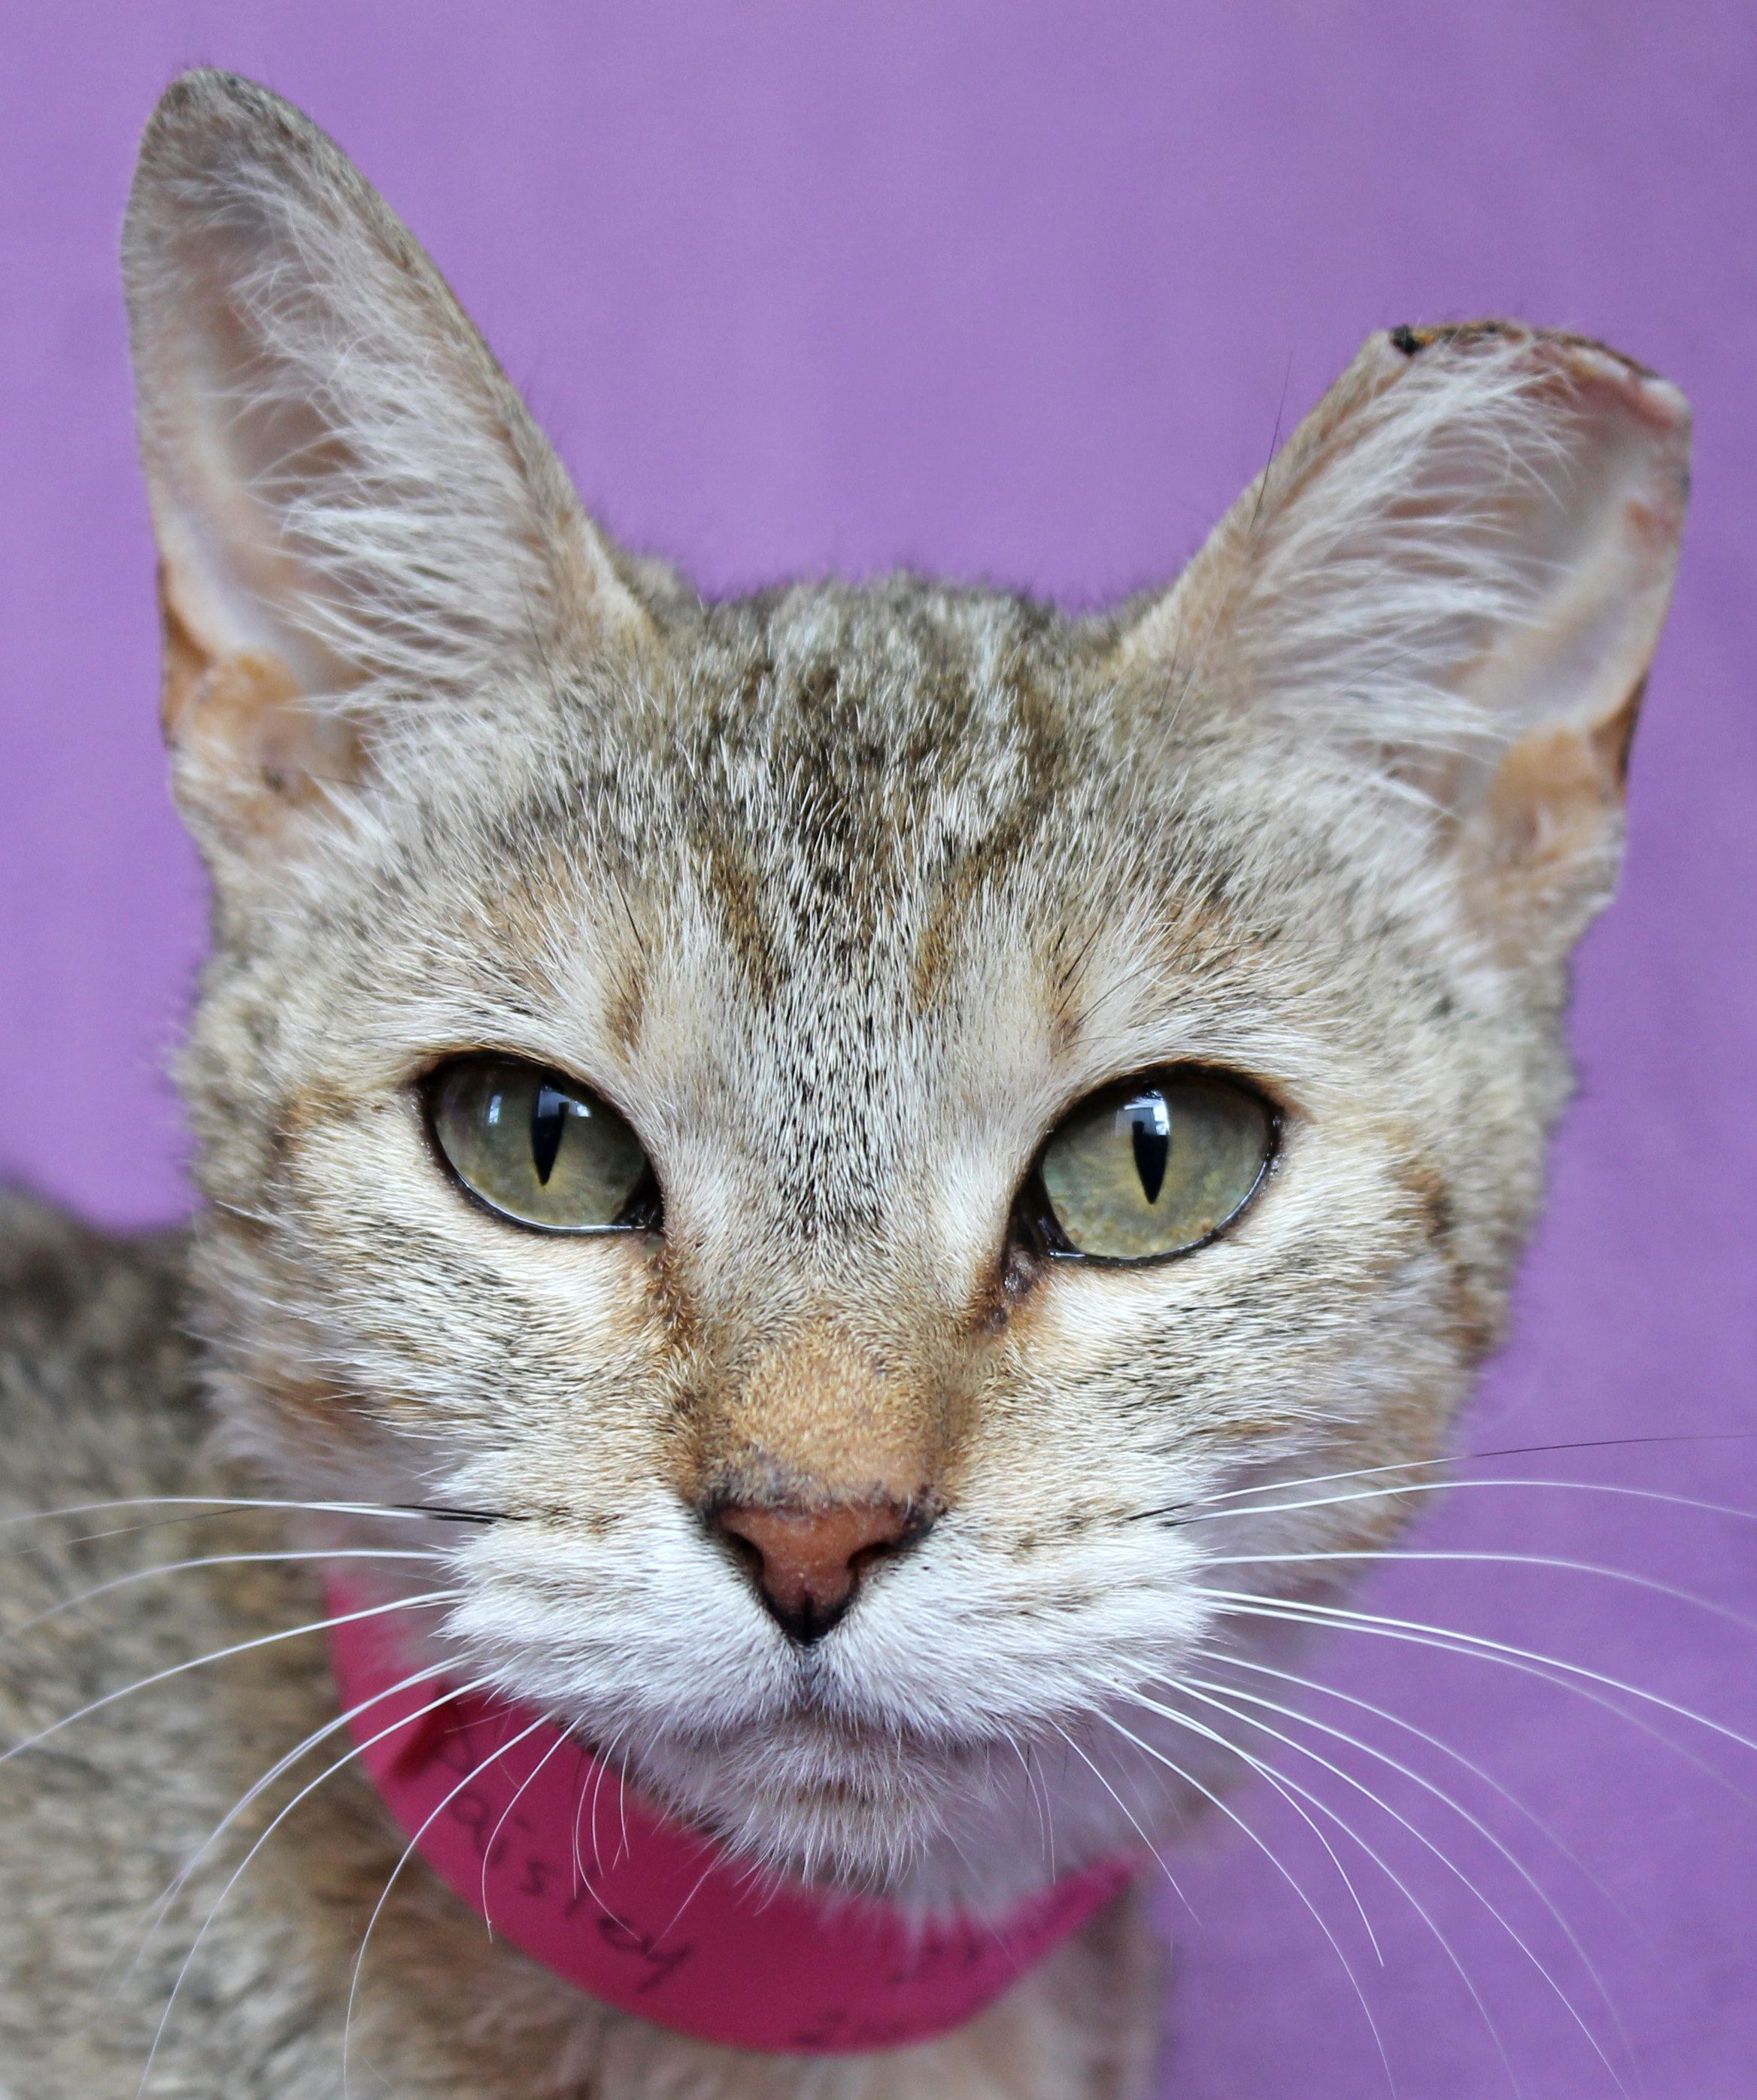 Paisley See More Dogs Cats On Www Sahumane Org Follow Us On